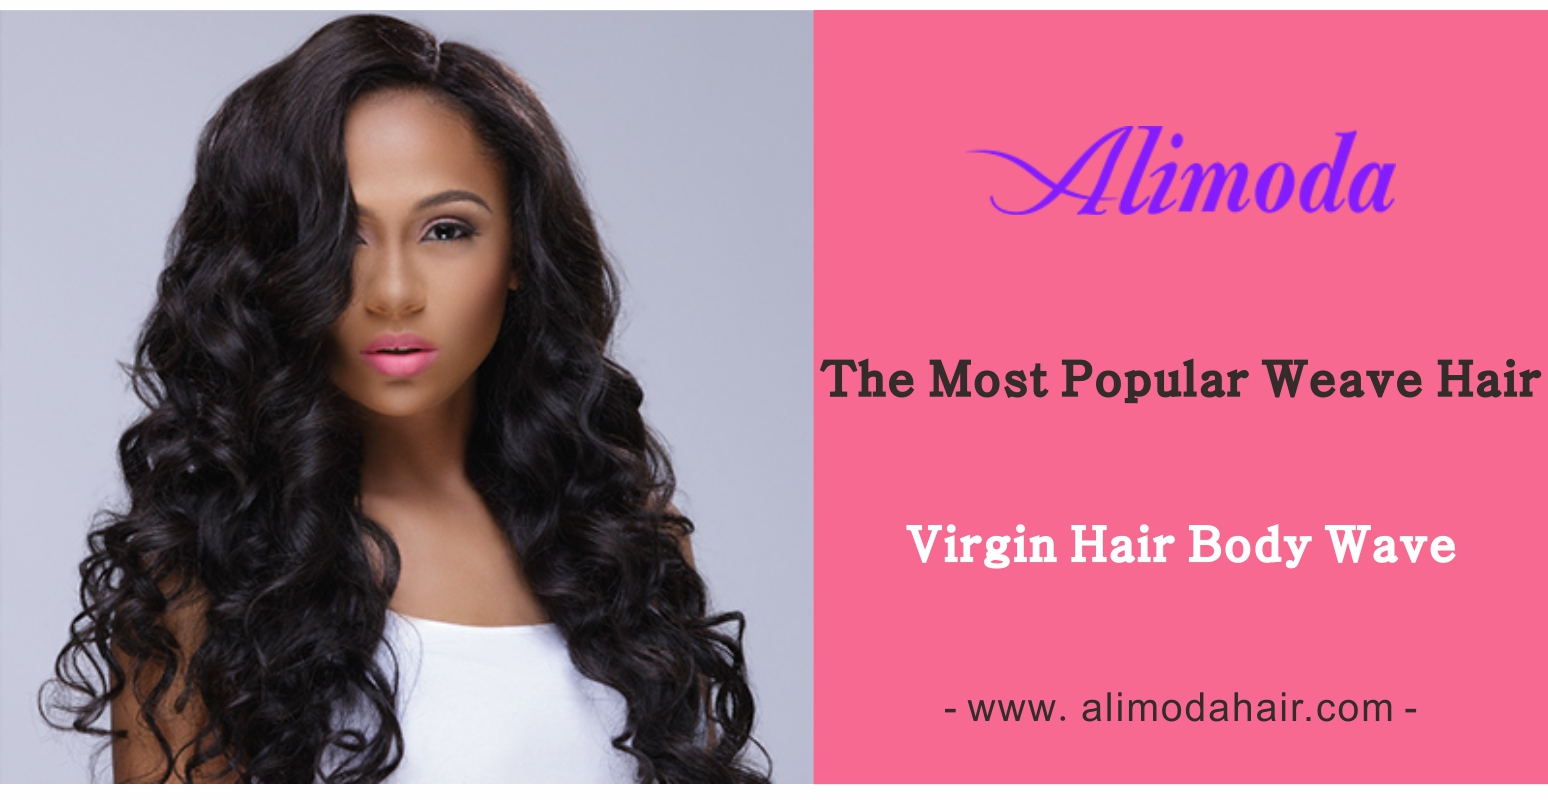 The most popular weave hair body wave